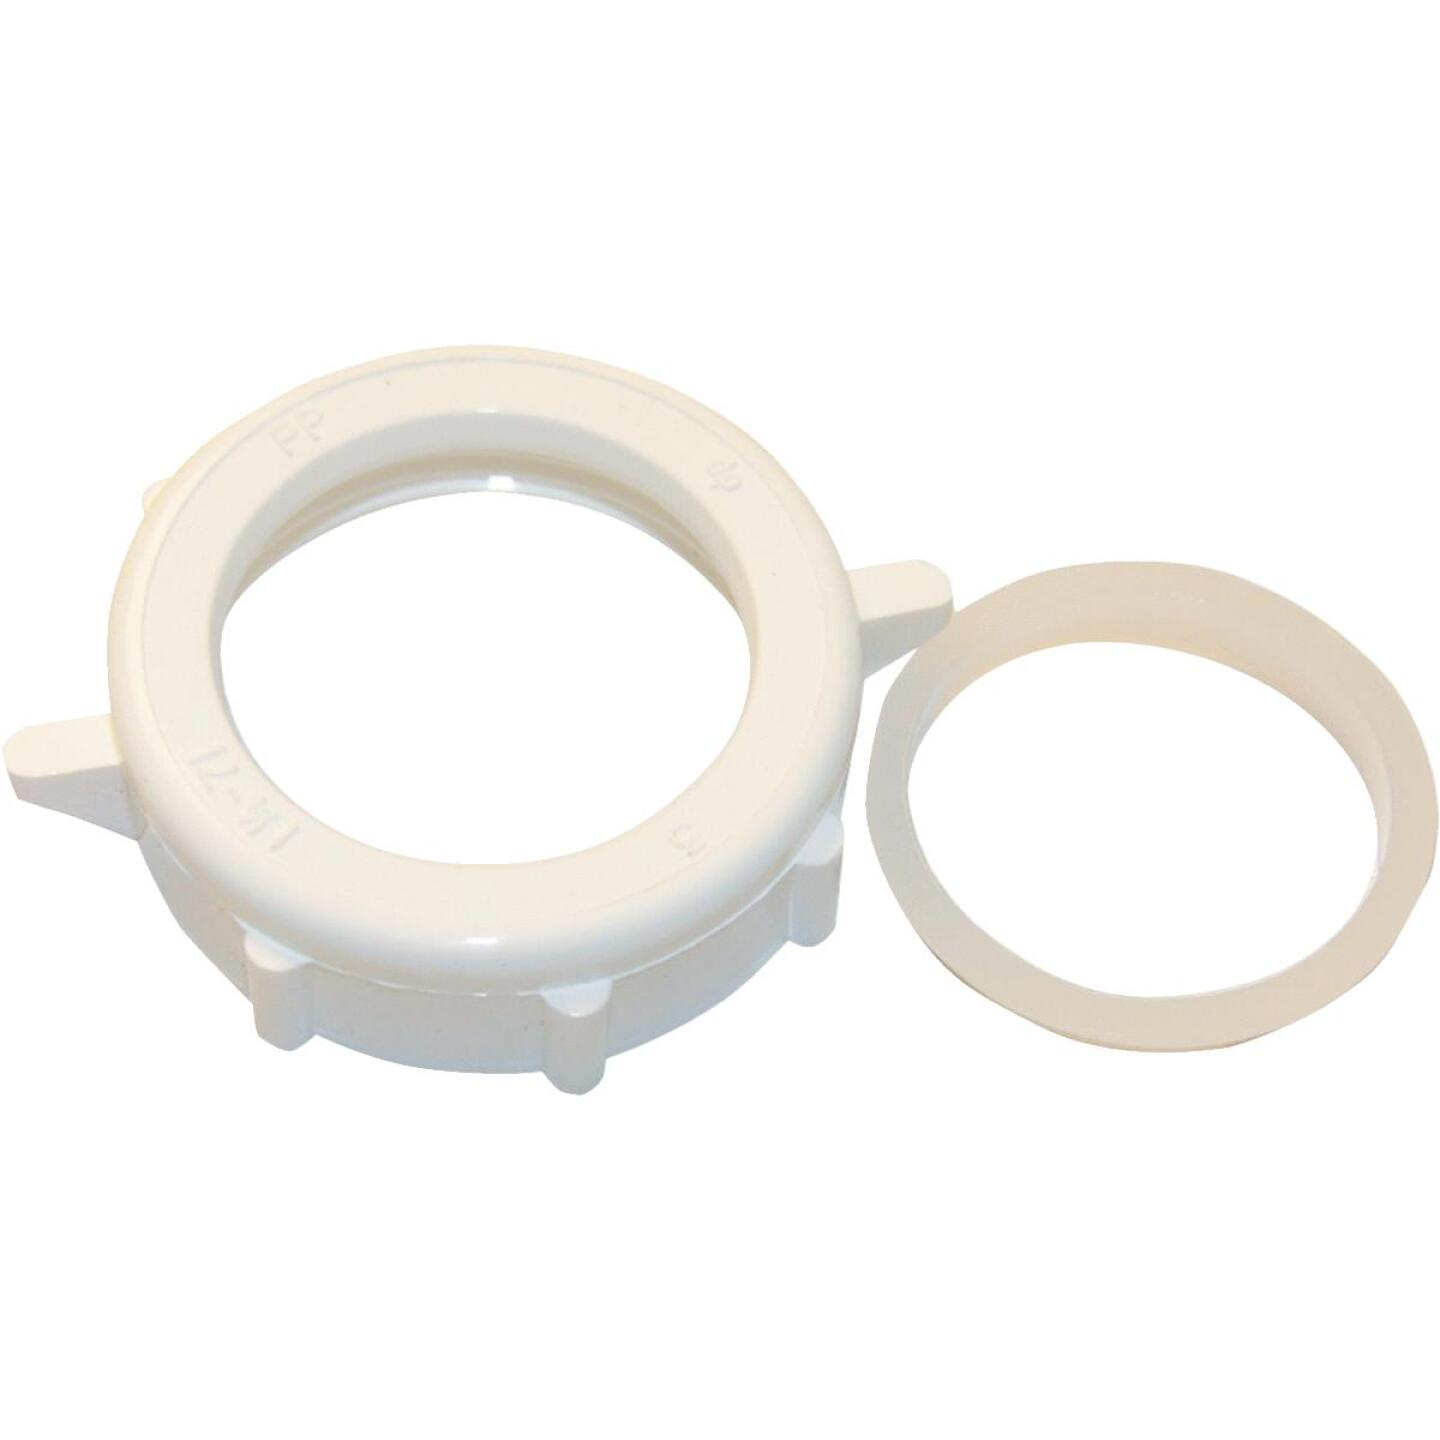 Lasco 1-1/4 In. x 1-1/4 In. White Plastic Slip Joint Nut and Washer Image 1